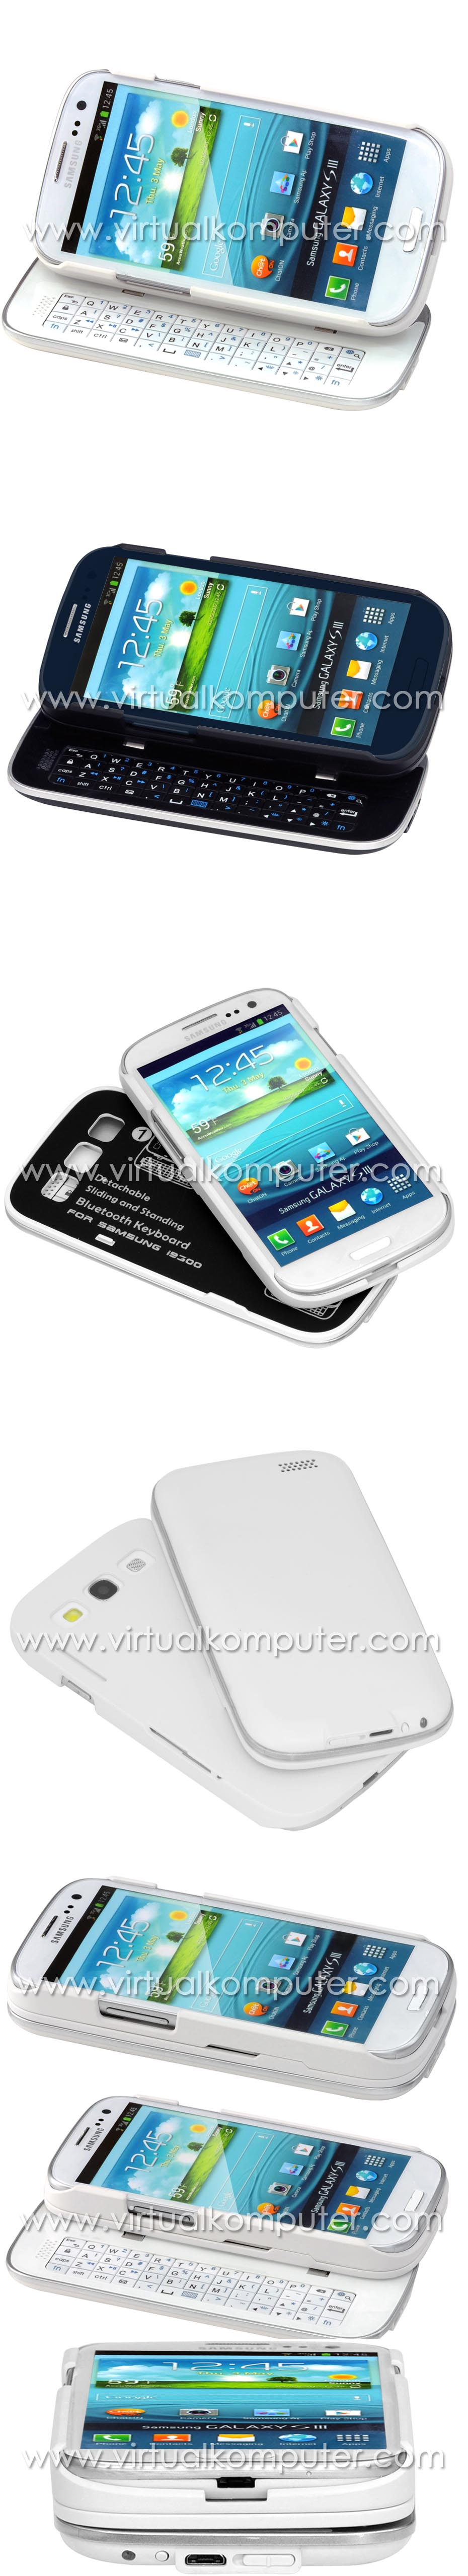 Keyboard Case for Samsung Galaxy S3 I9300 Overview